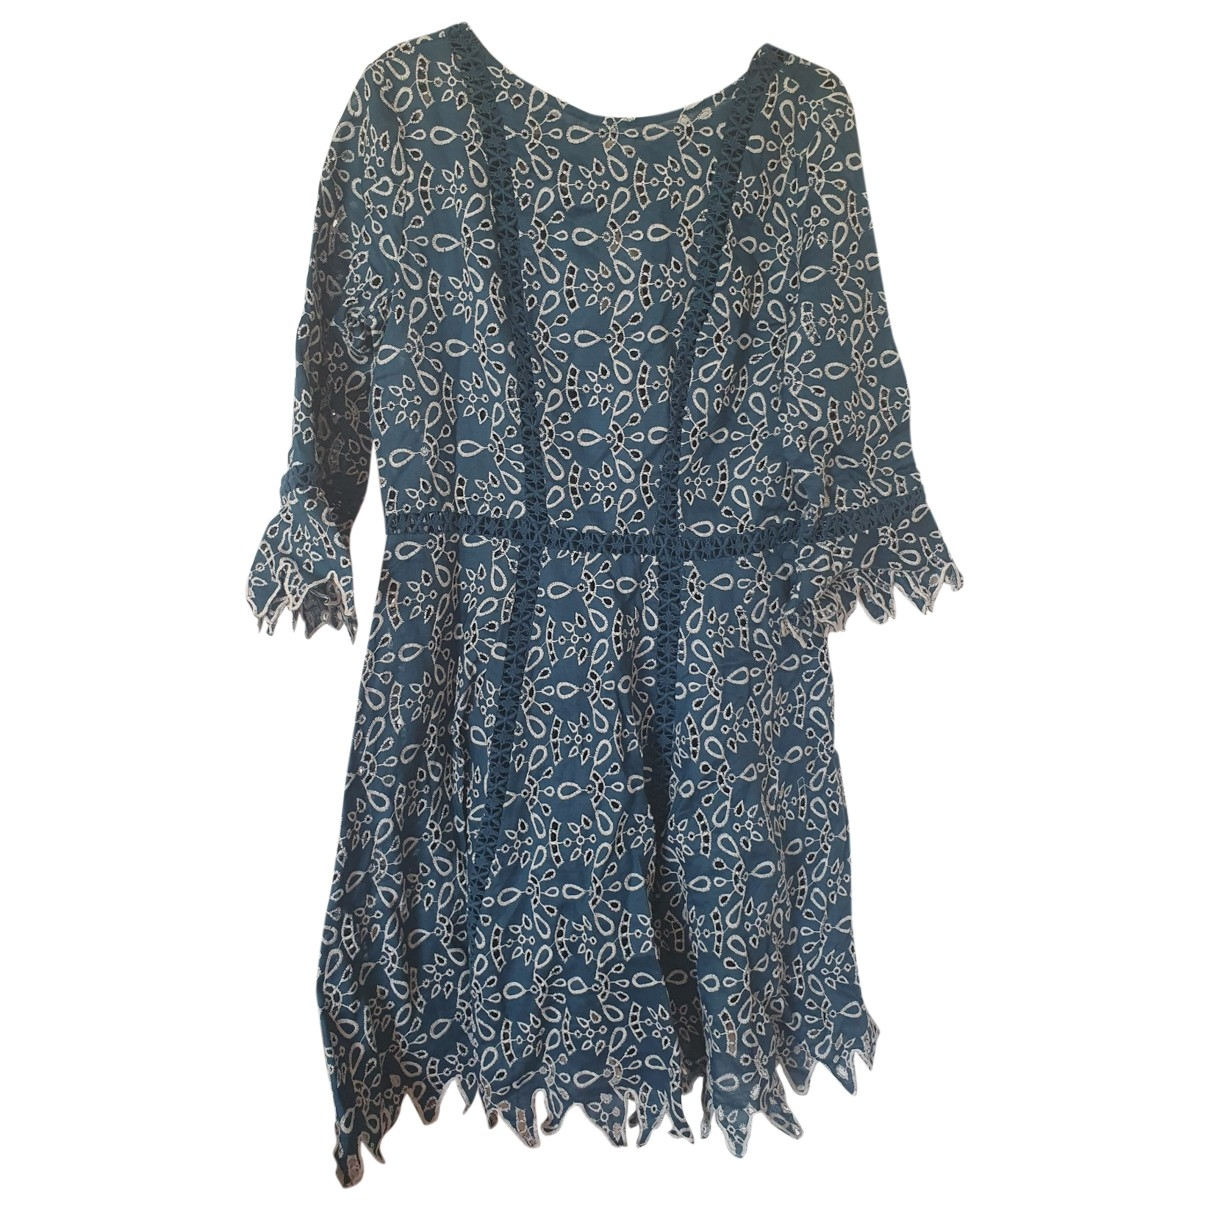 Maje \N Turquoise Cotton dress for Women 40 FR